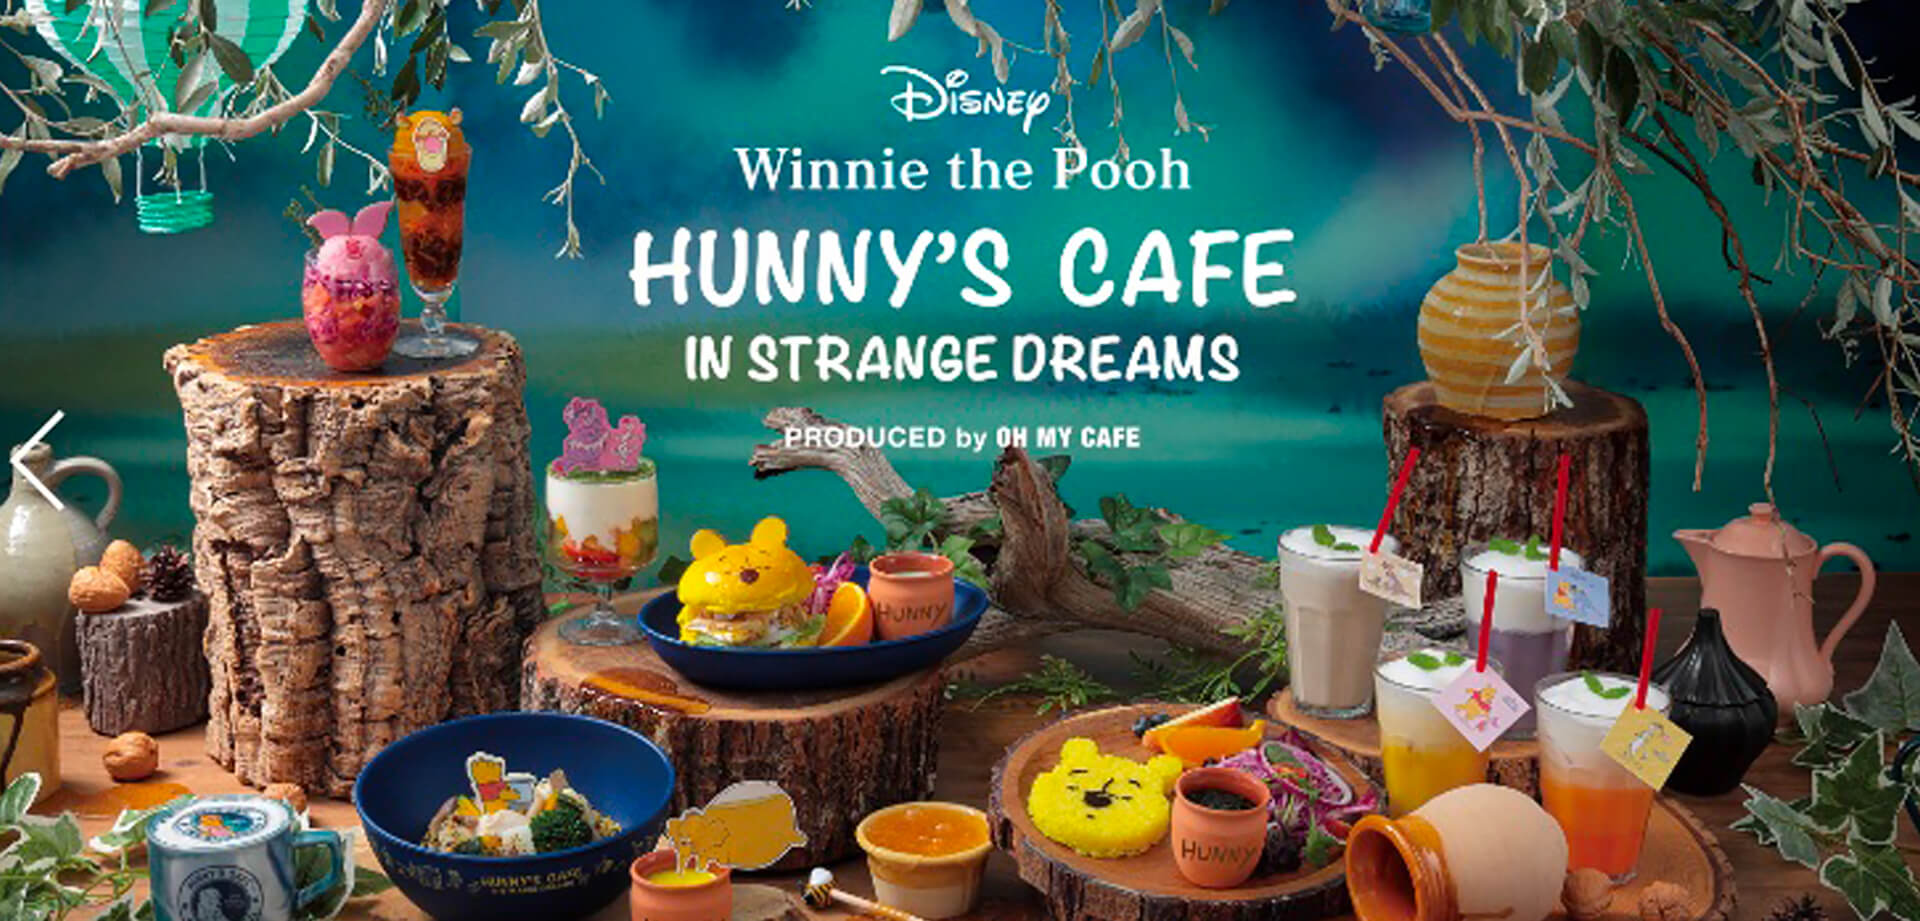 『Winnie the Pooh』HUNNY'S CAFE in STRANGE DREAMS